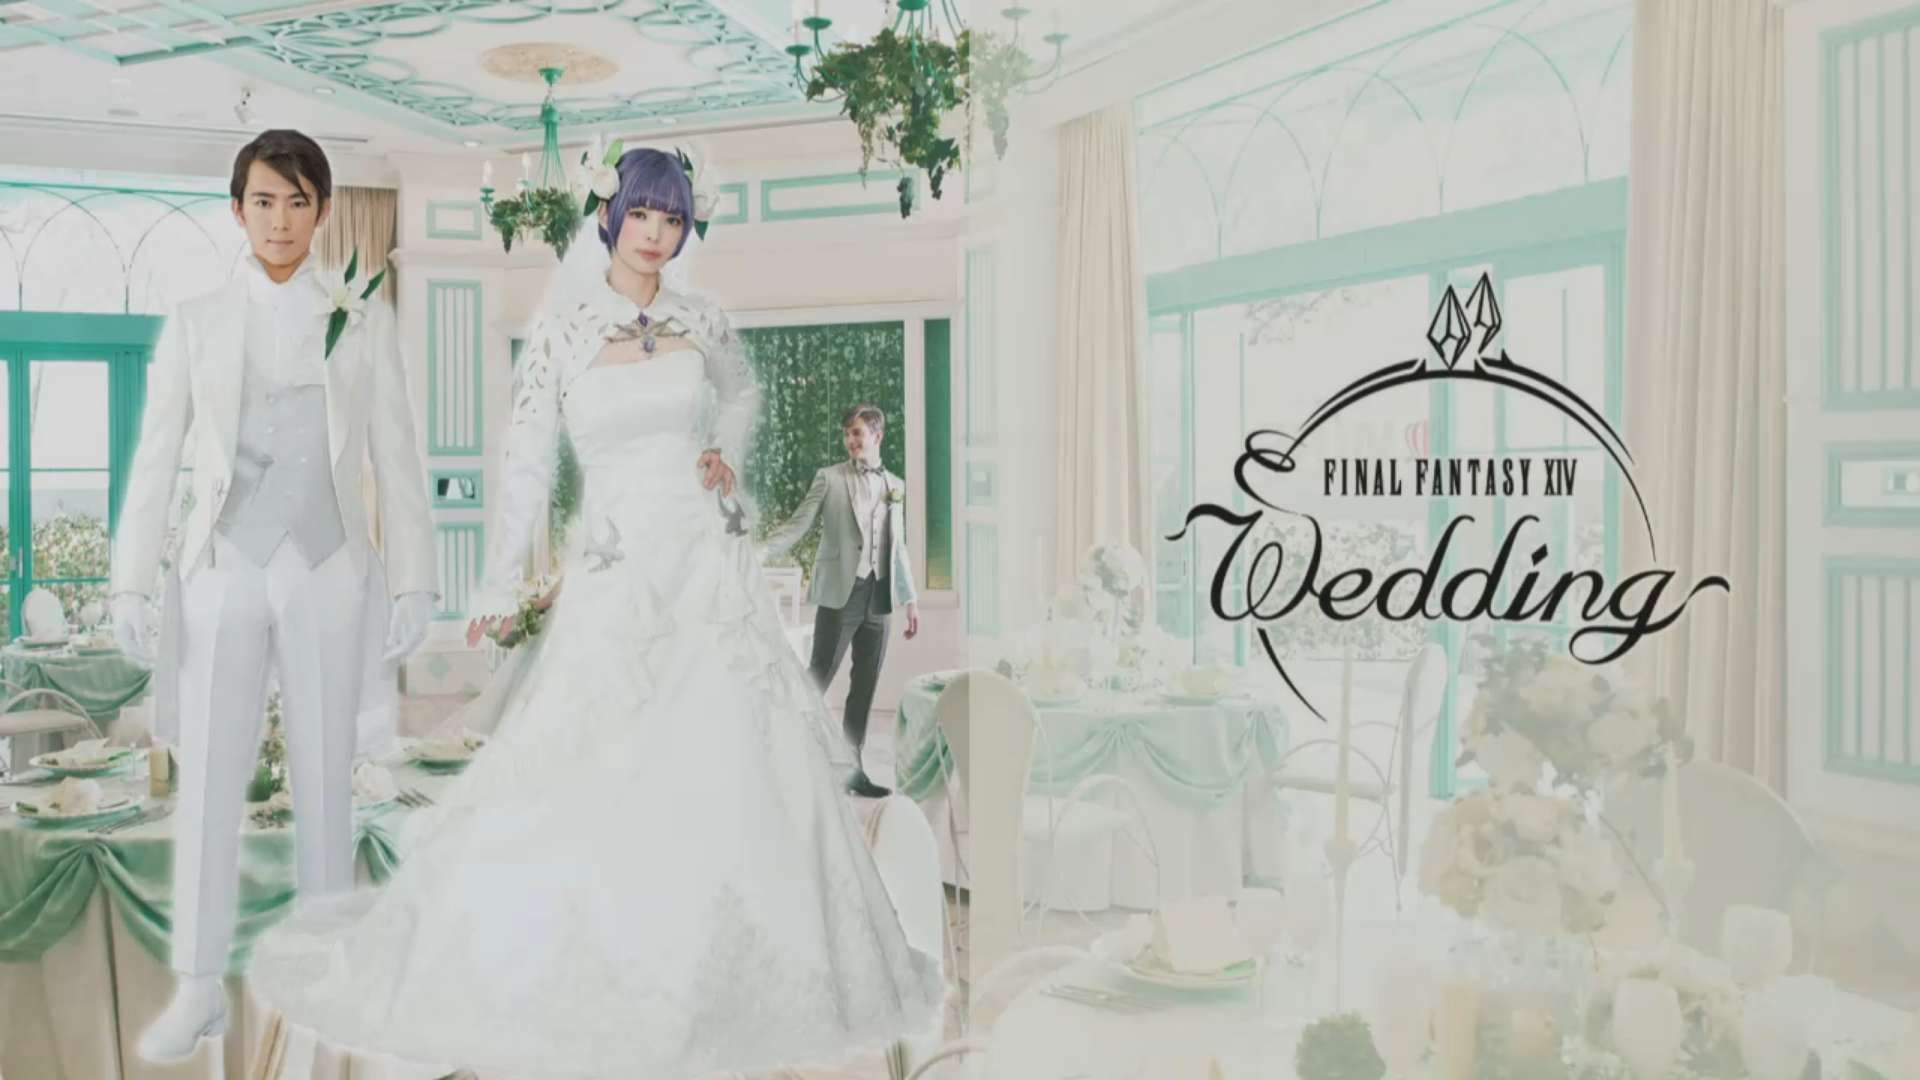 Final Fantasy XIV Wedding